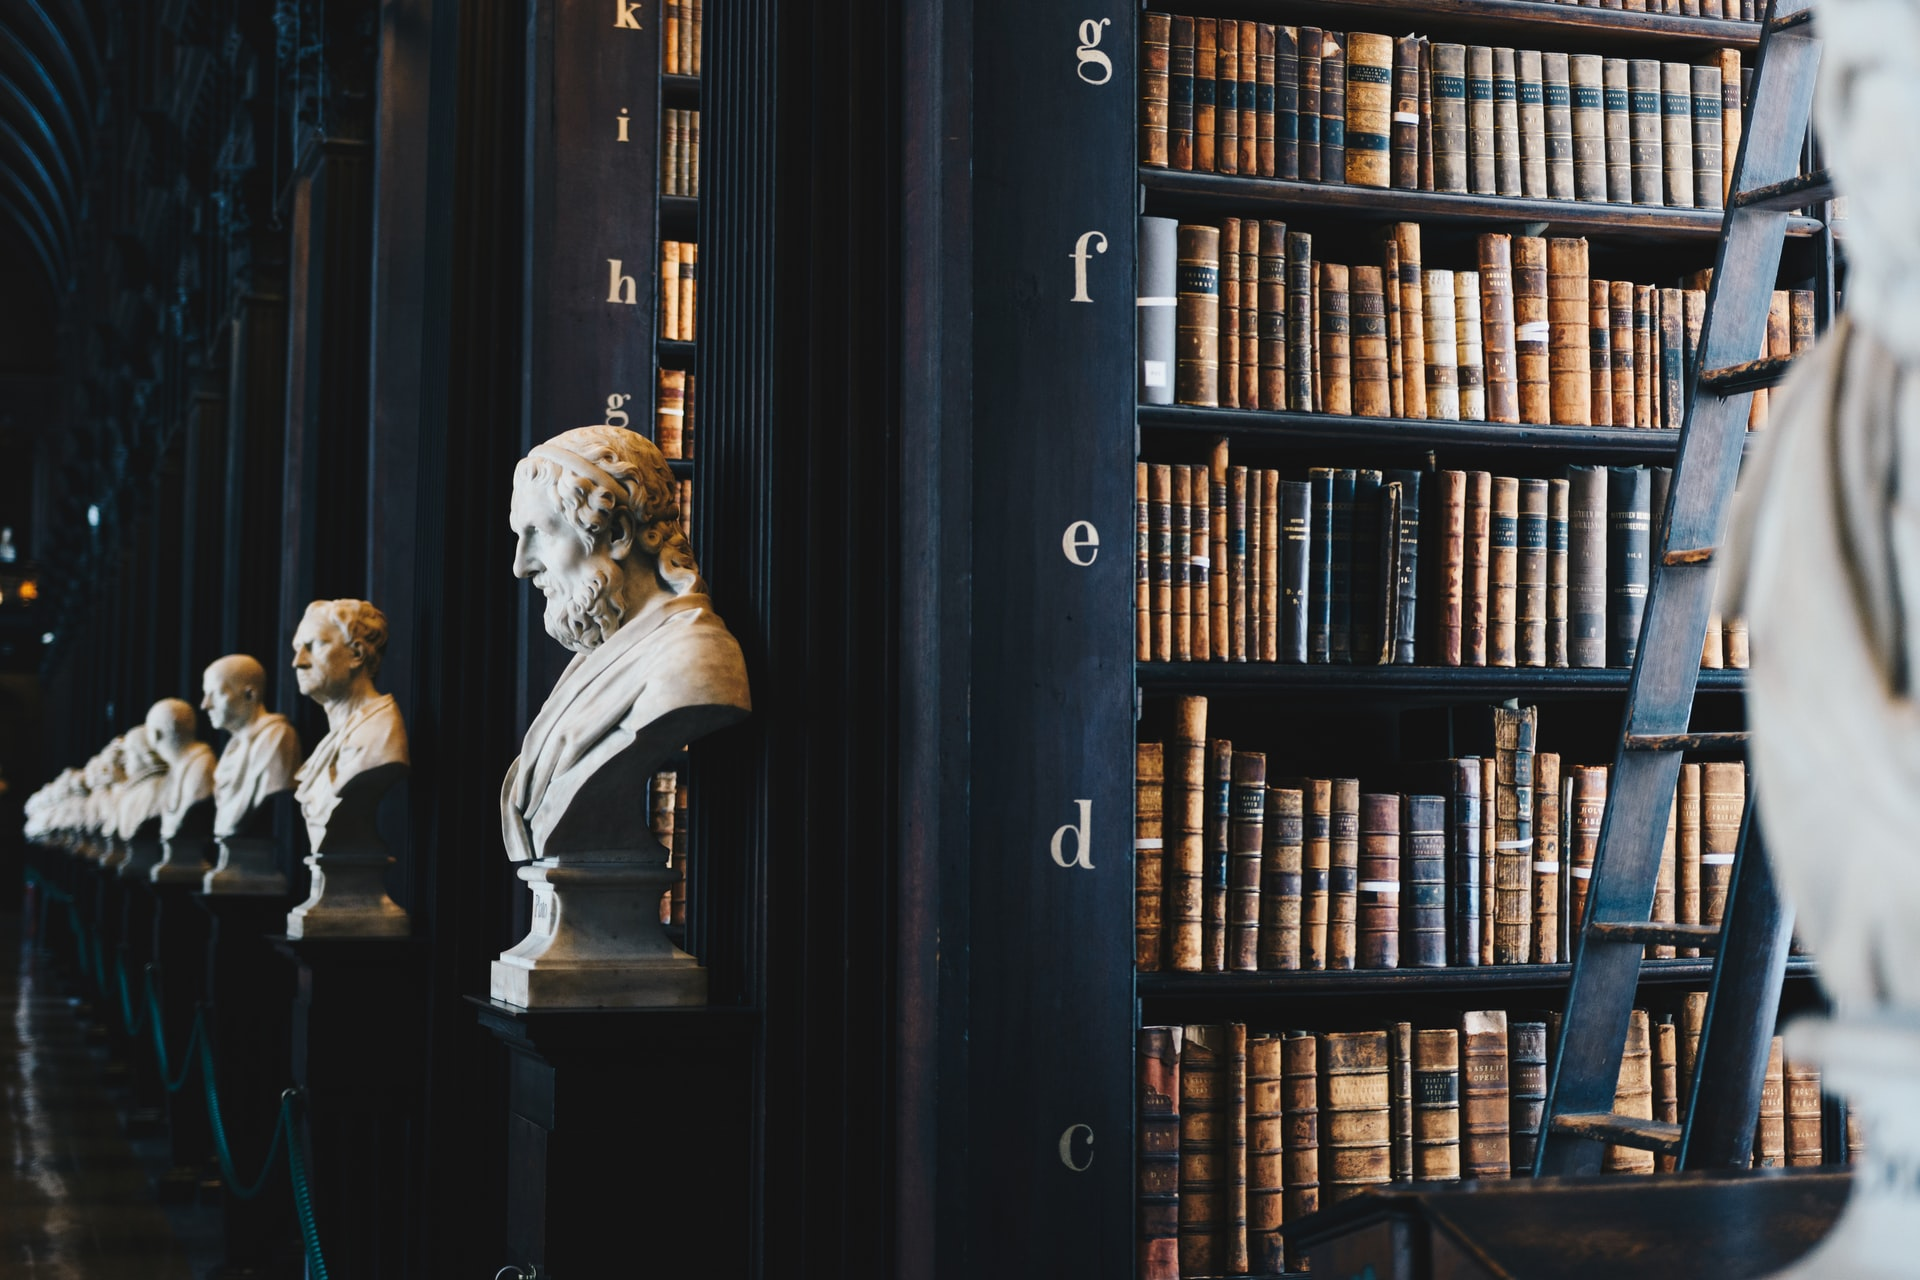 Best Arbitration Books